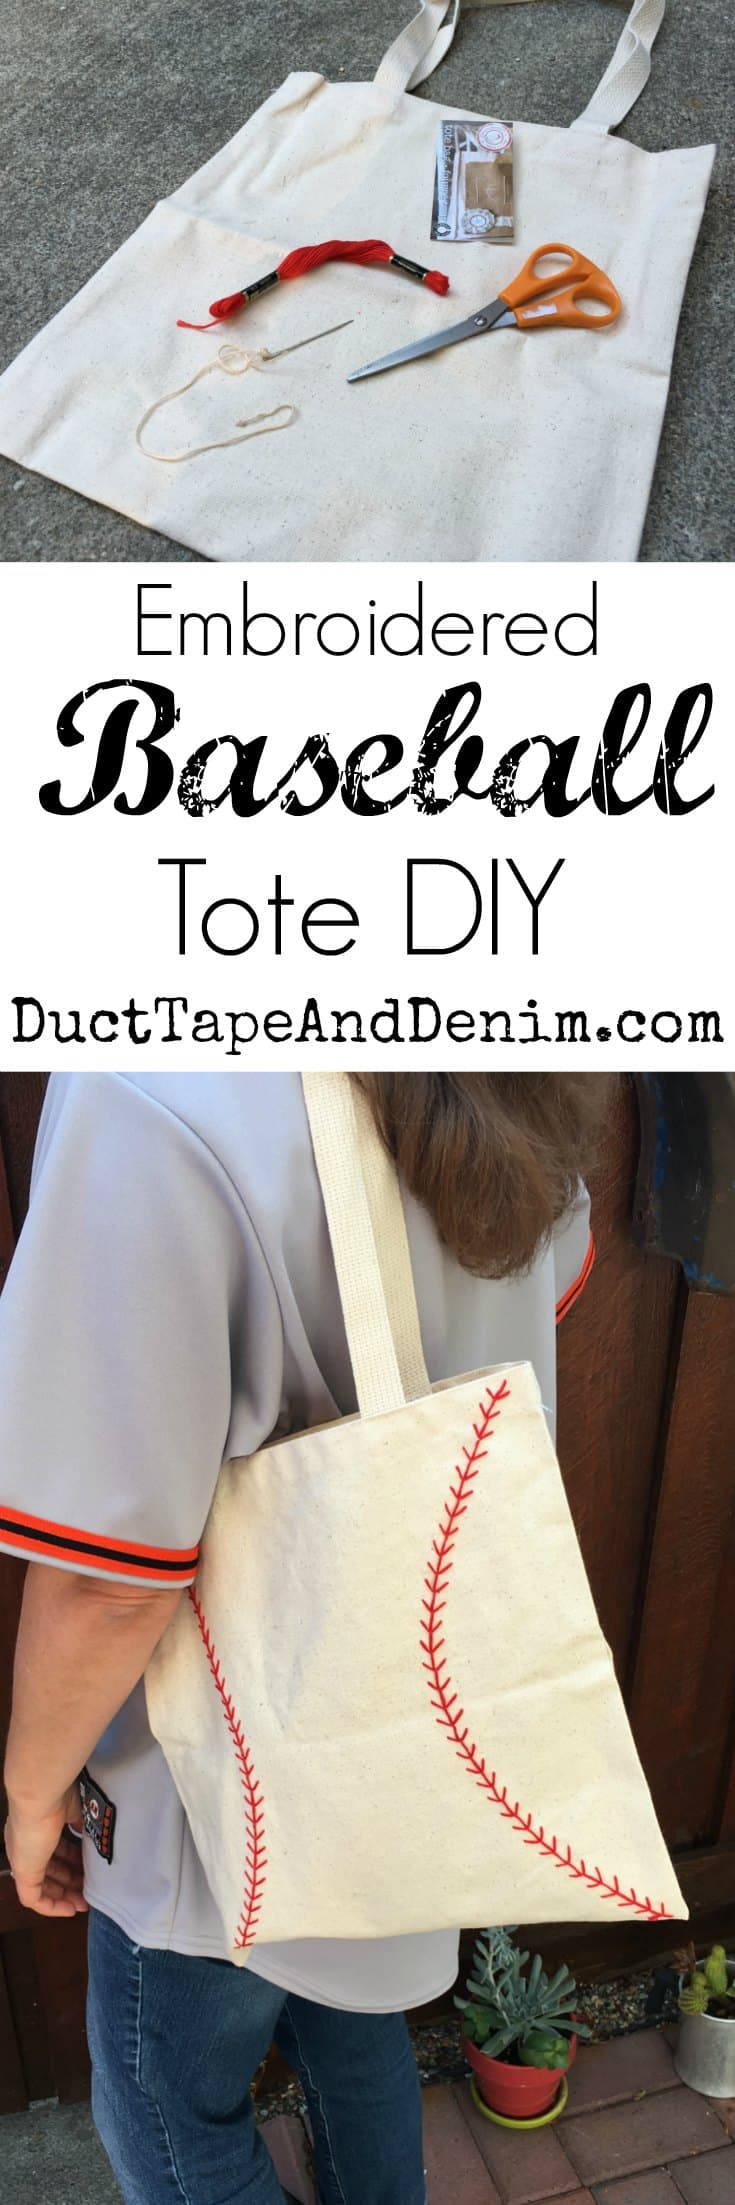 a9e8028fb How to Make an Embroidered Baseball Bag or Tote